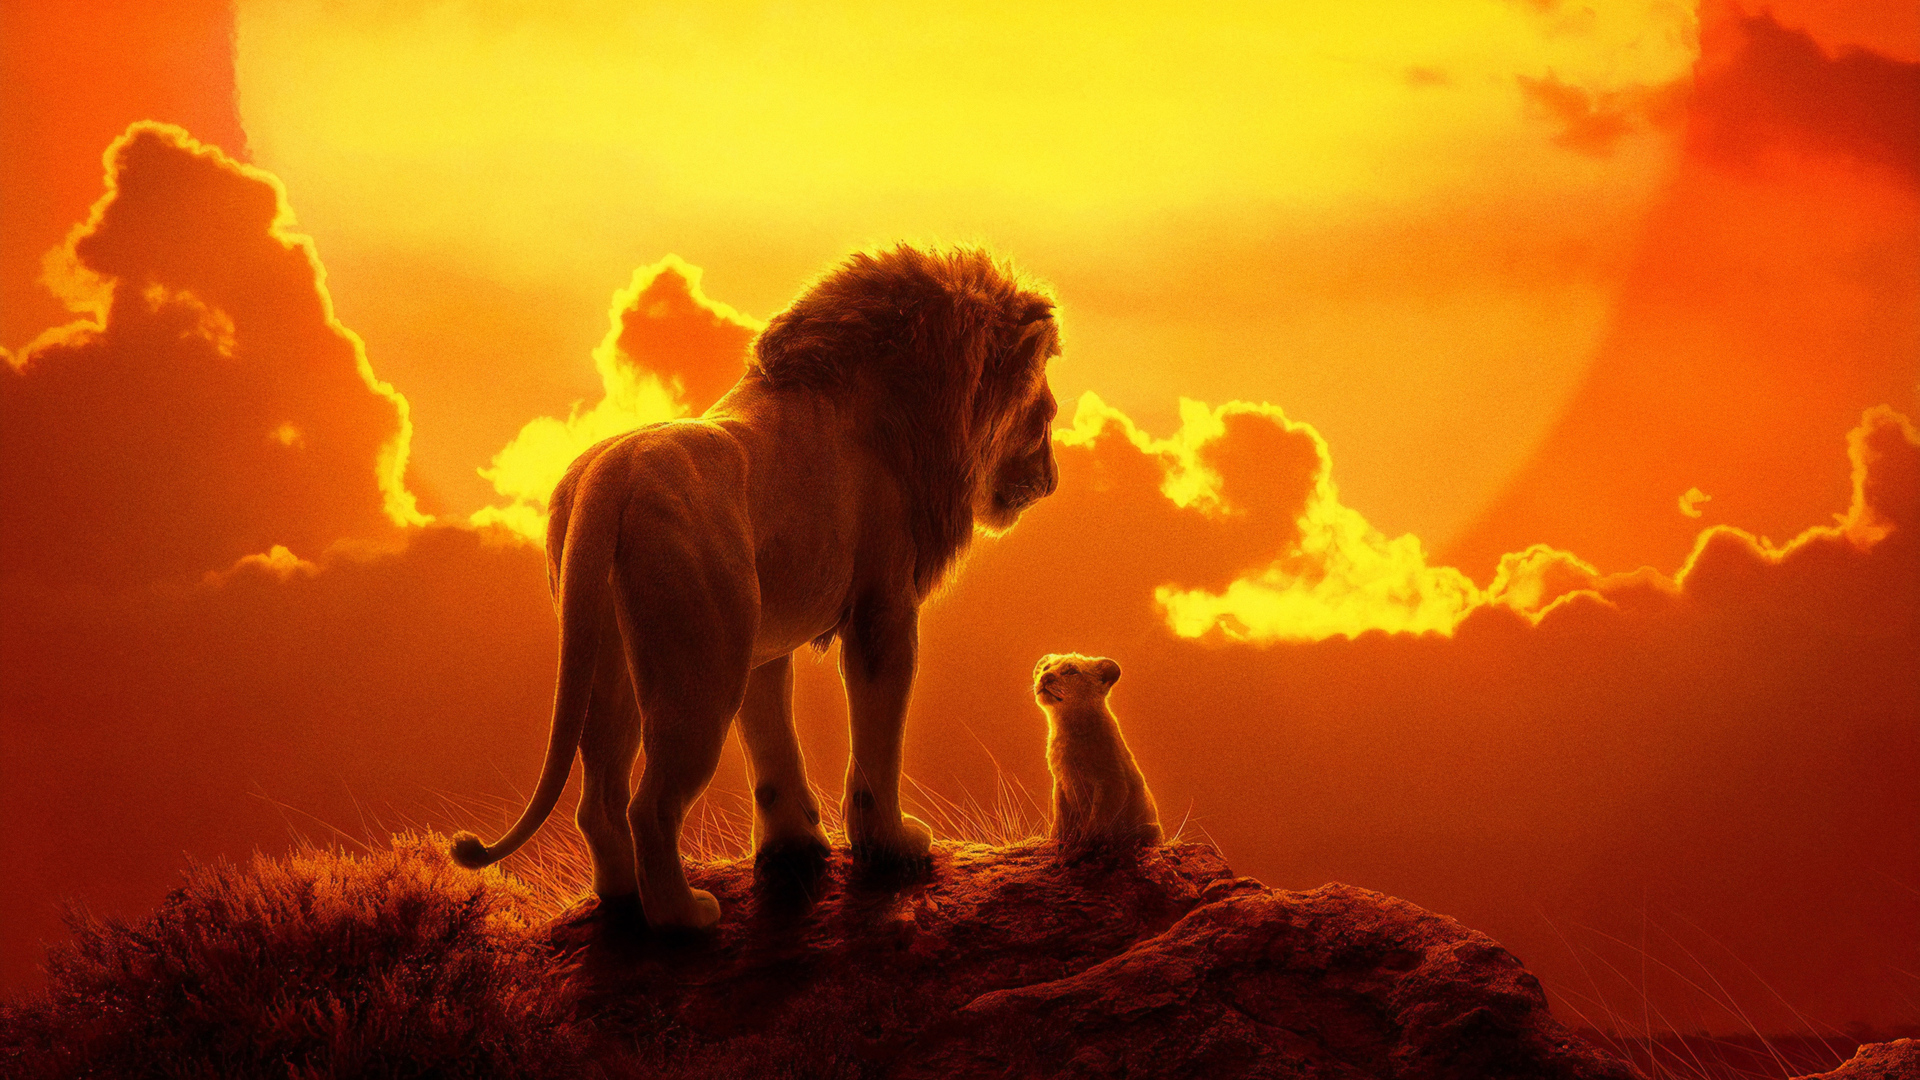 Lion king hd wallpapers 1080p | HD Wallpapers Lion Group (86+)  2019